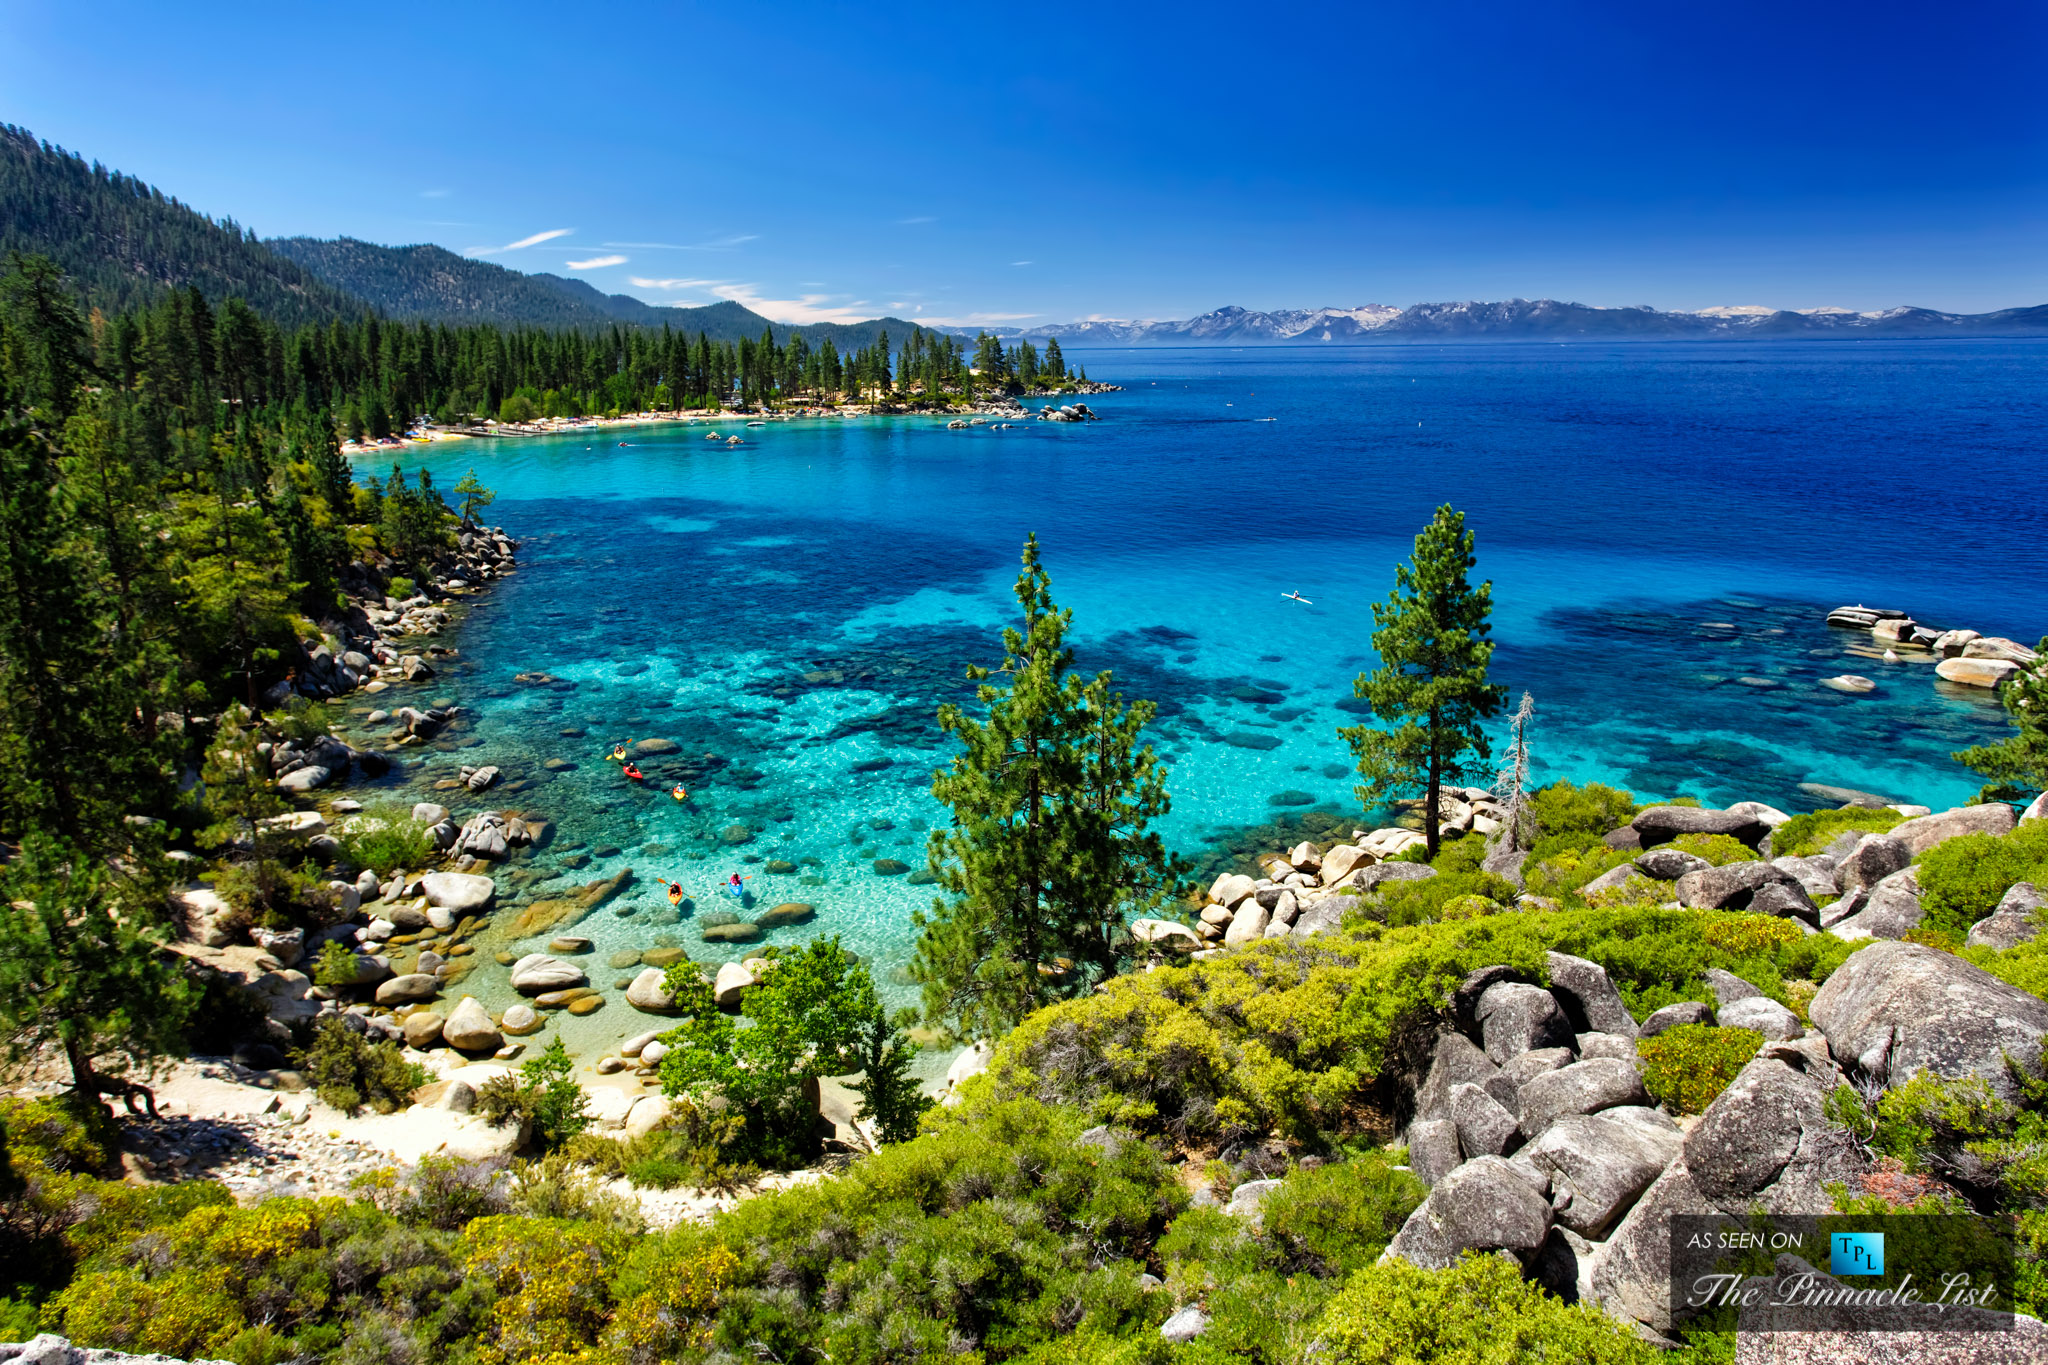 Spring - Beautiful, but Beware Flash Snow Storms - Elevating Nuptials to a Higher Level - A Picturesque Lake Tahoe Wedding for Every Season